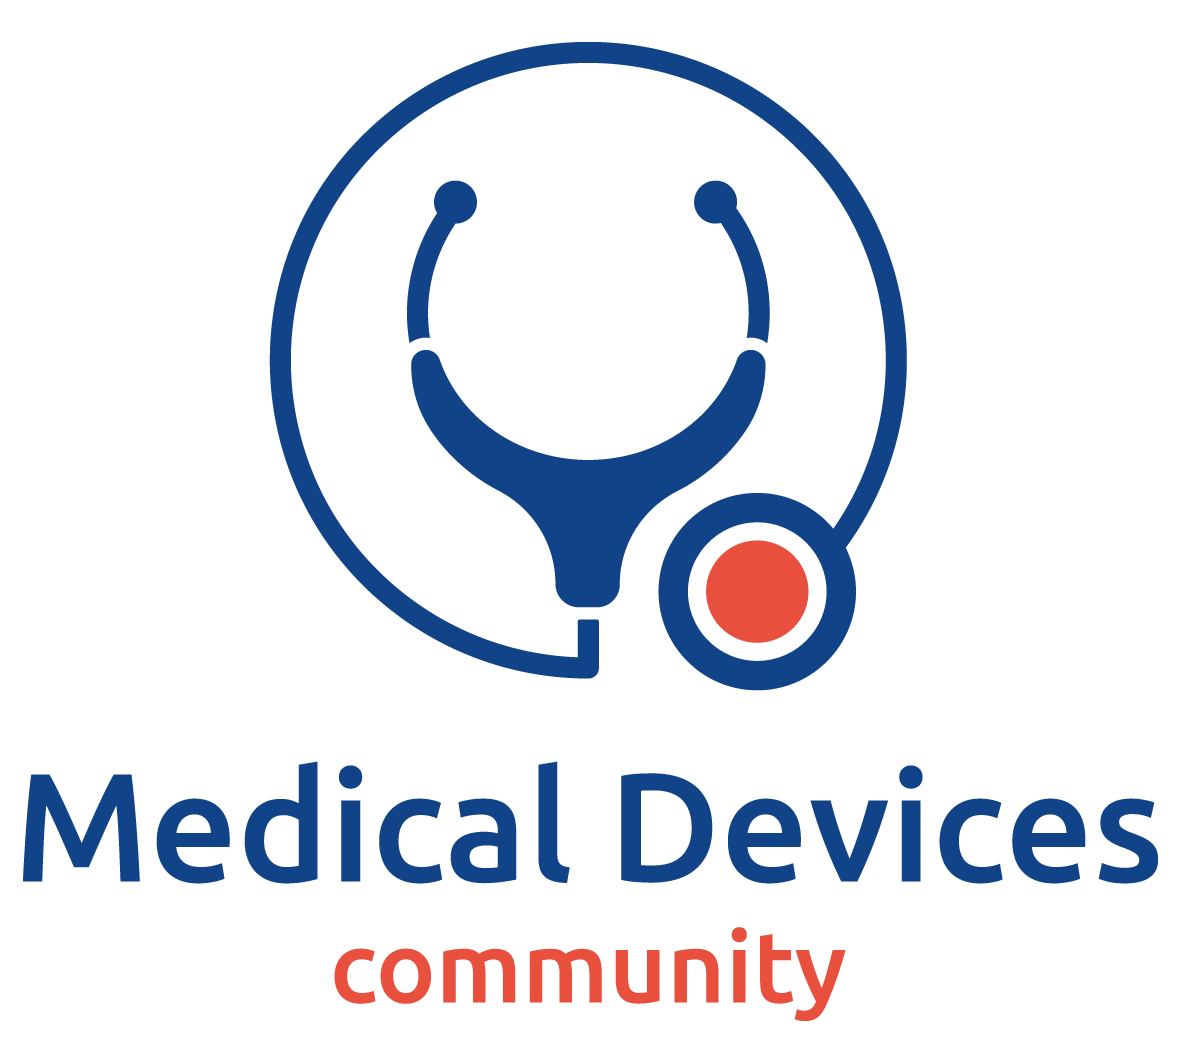 Medical Device Community